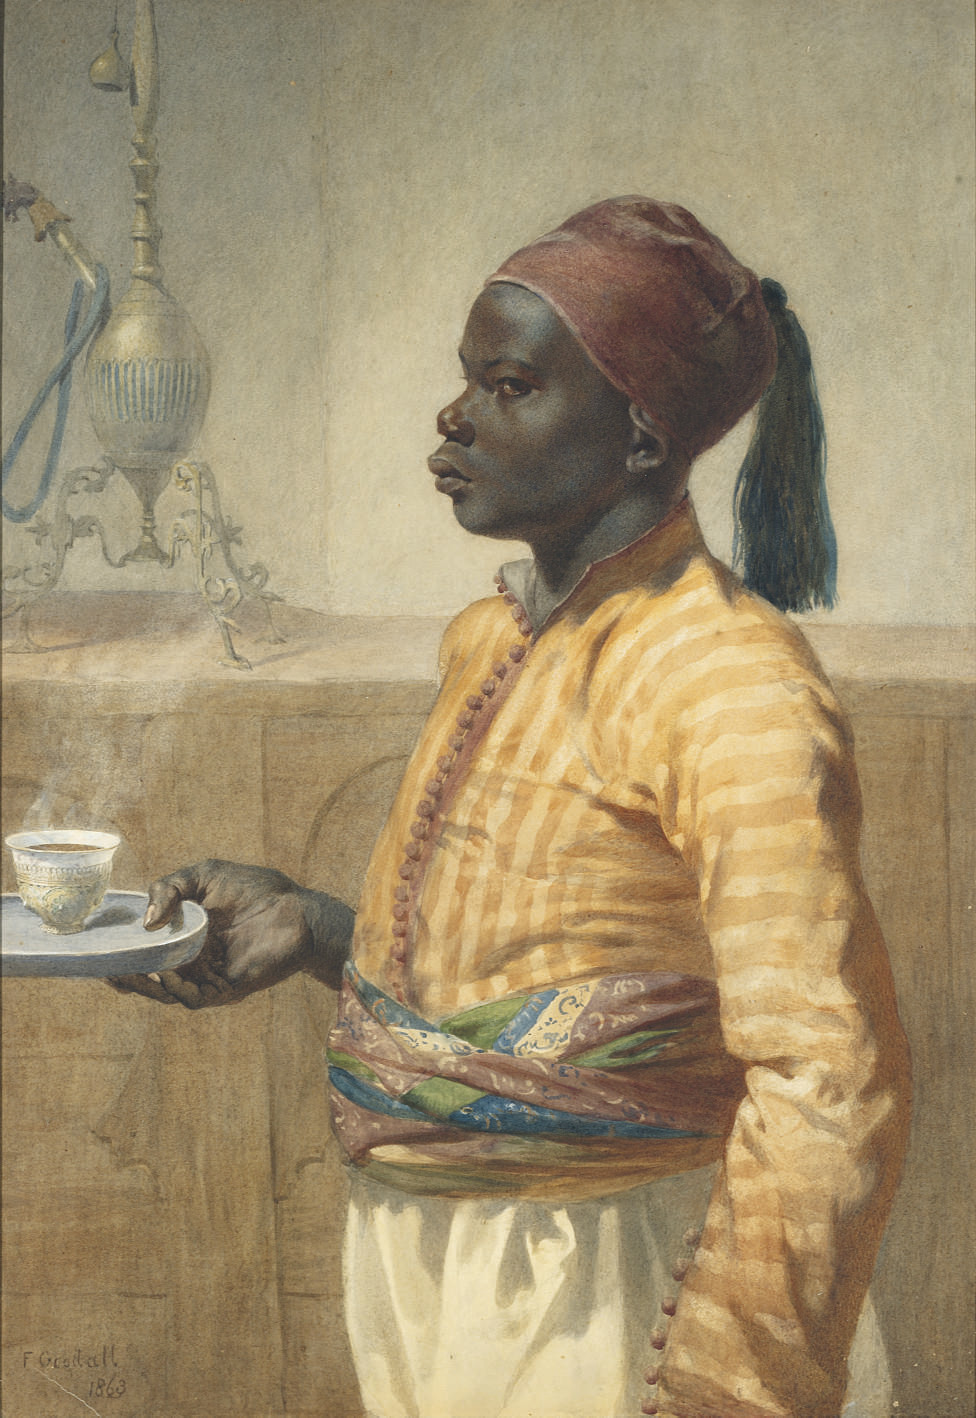 The Nubian coffee boy